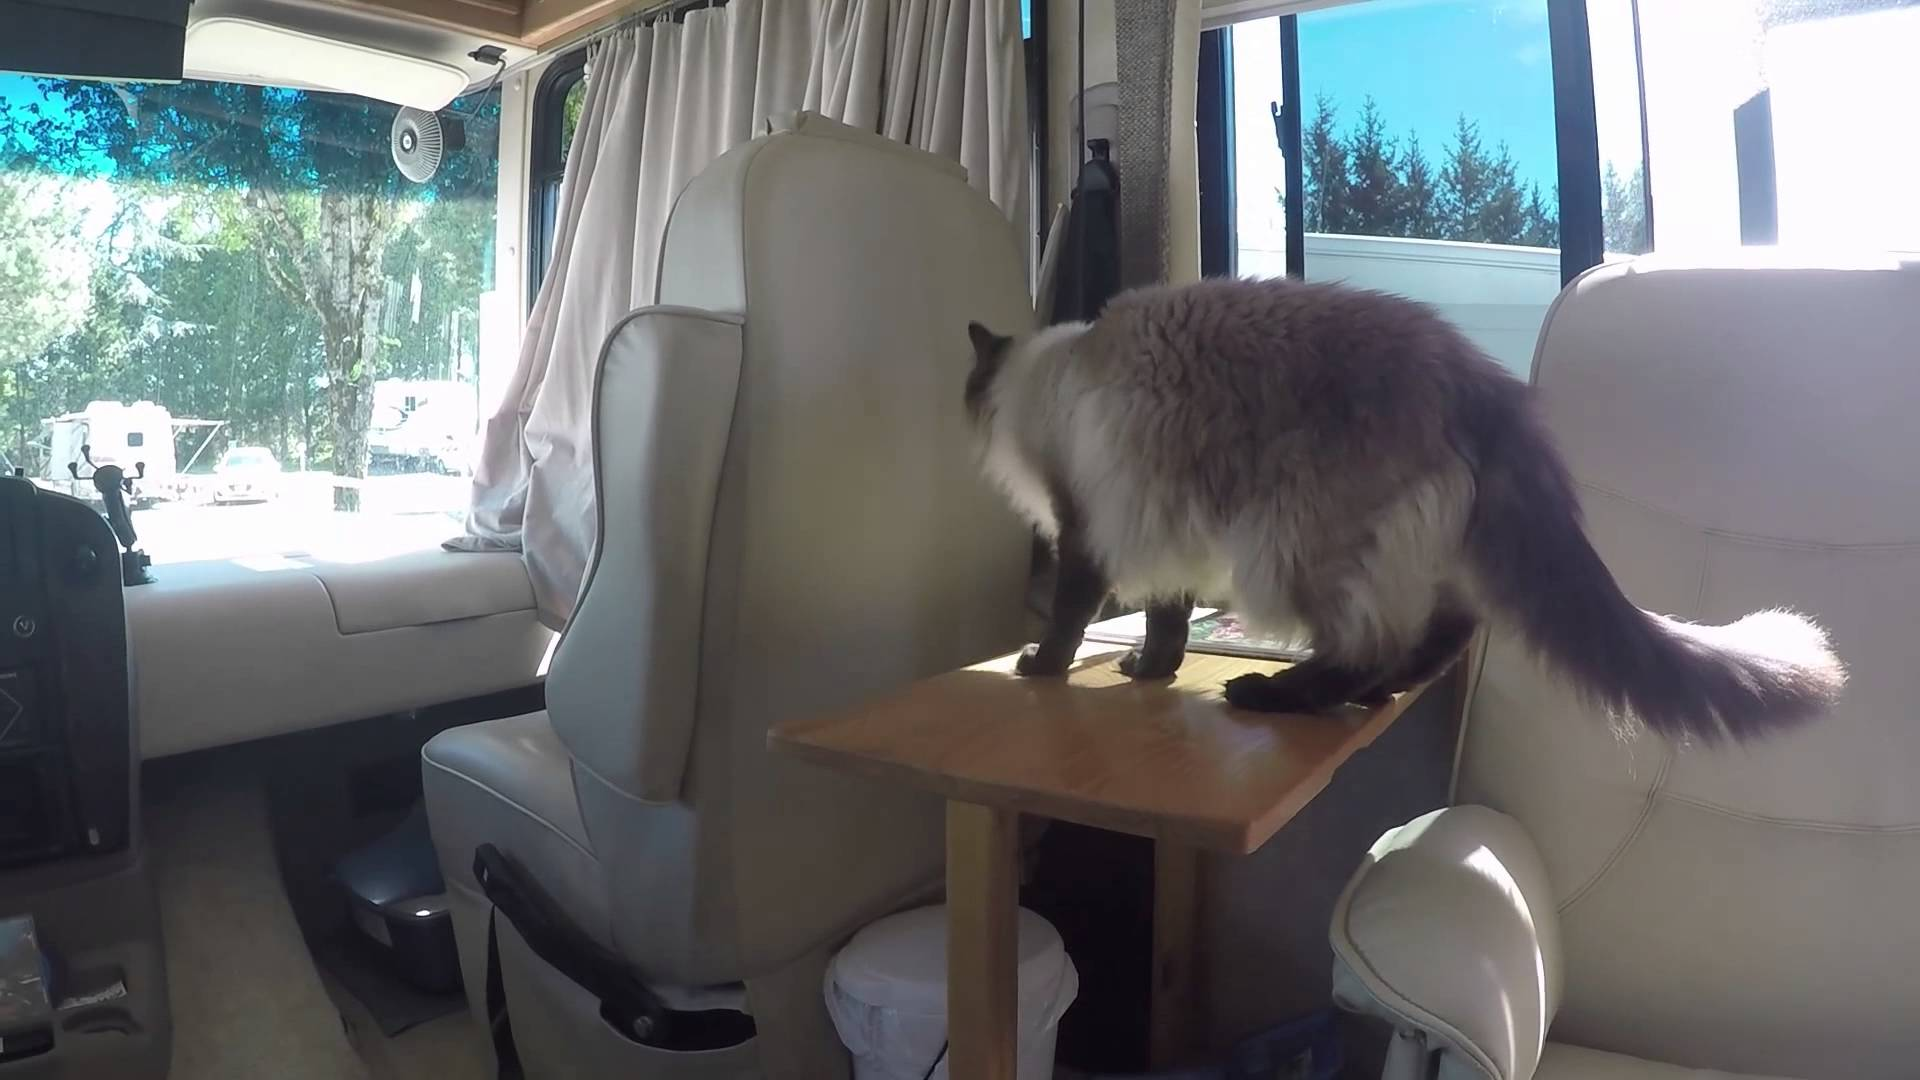 Take your cat into the RV